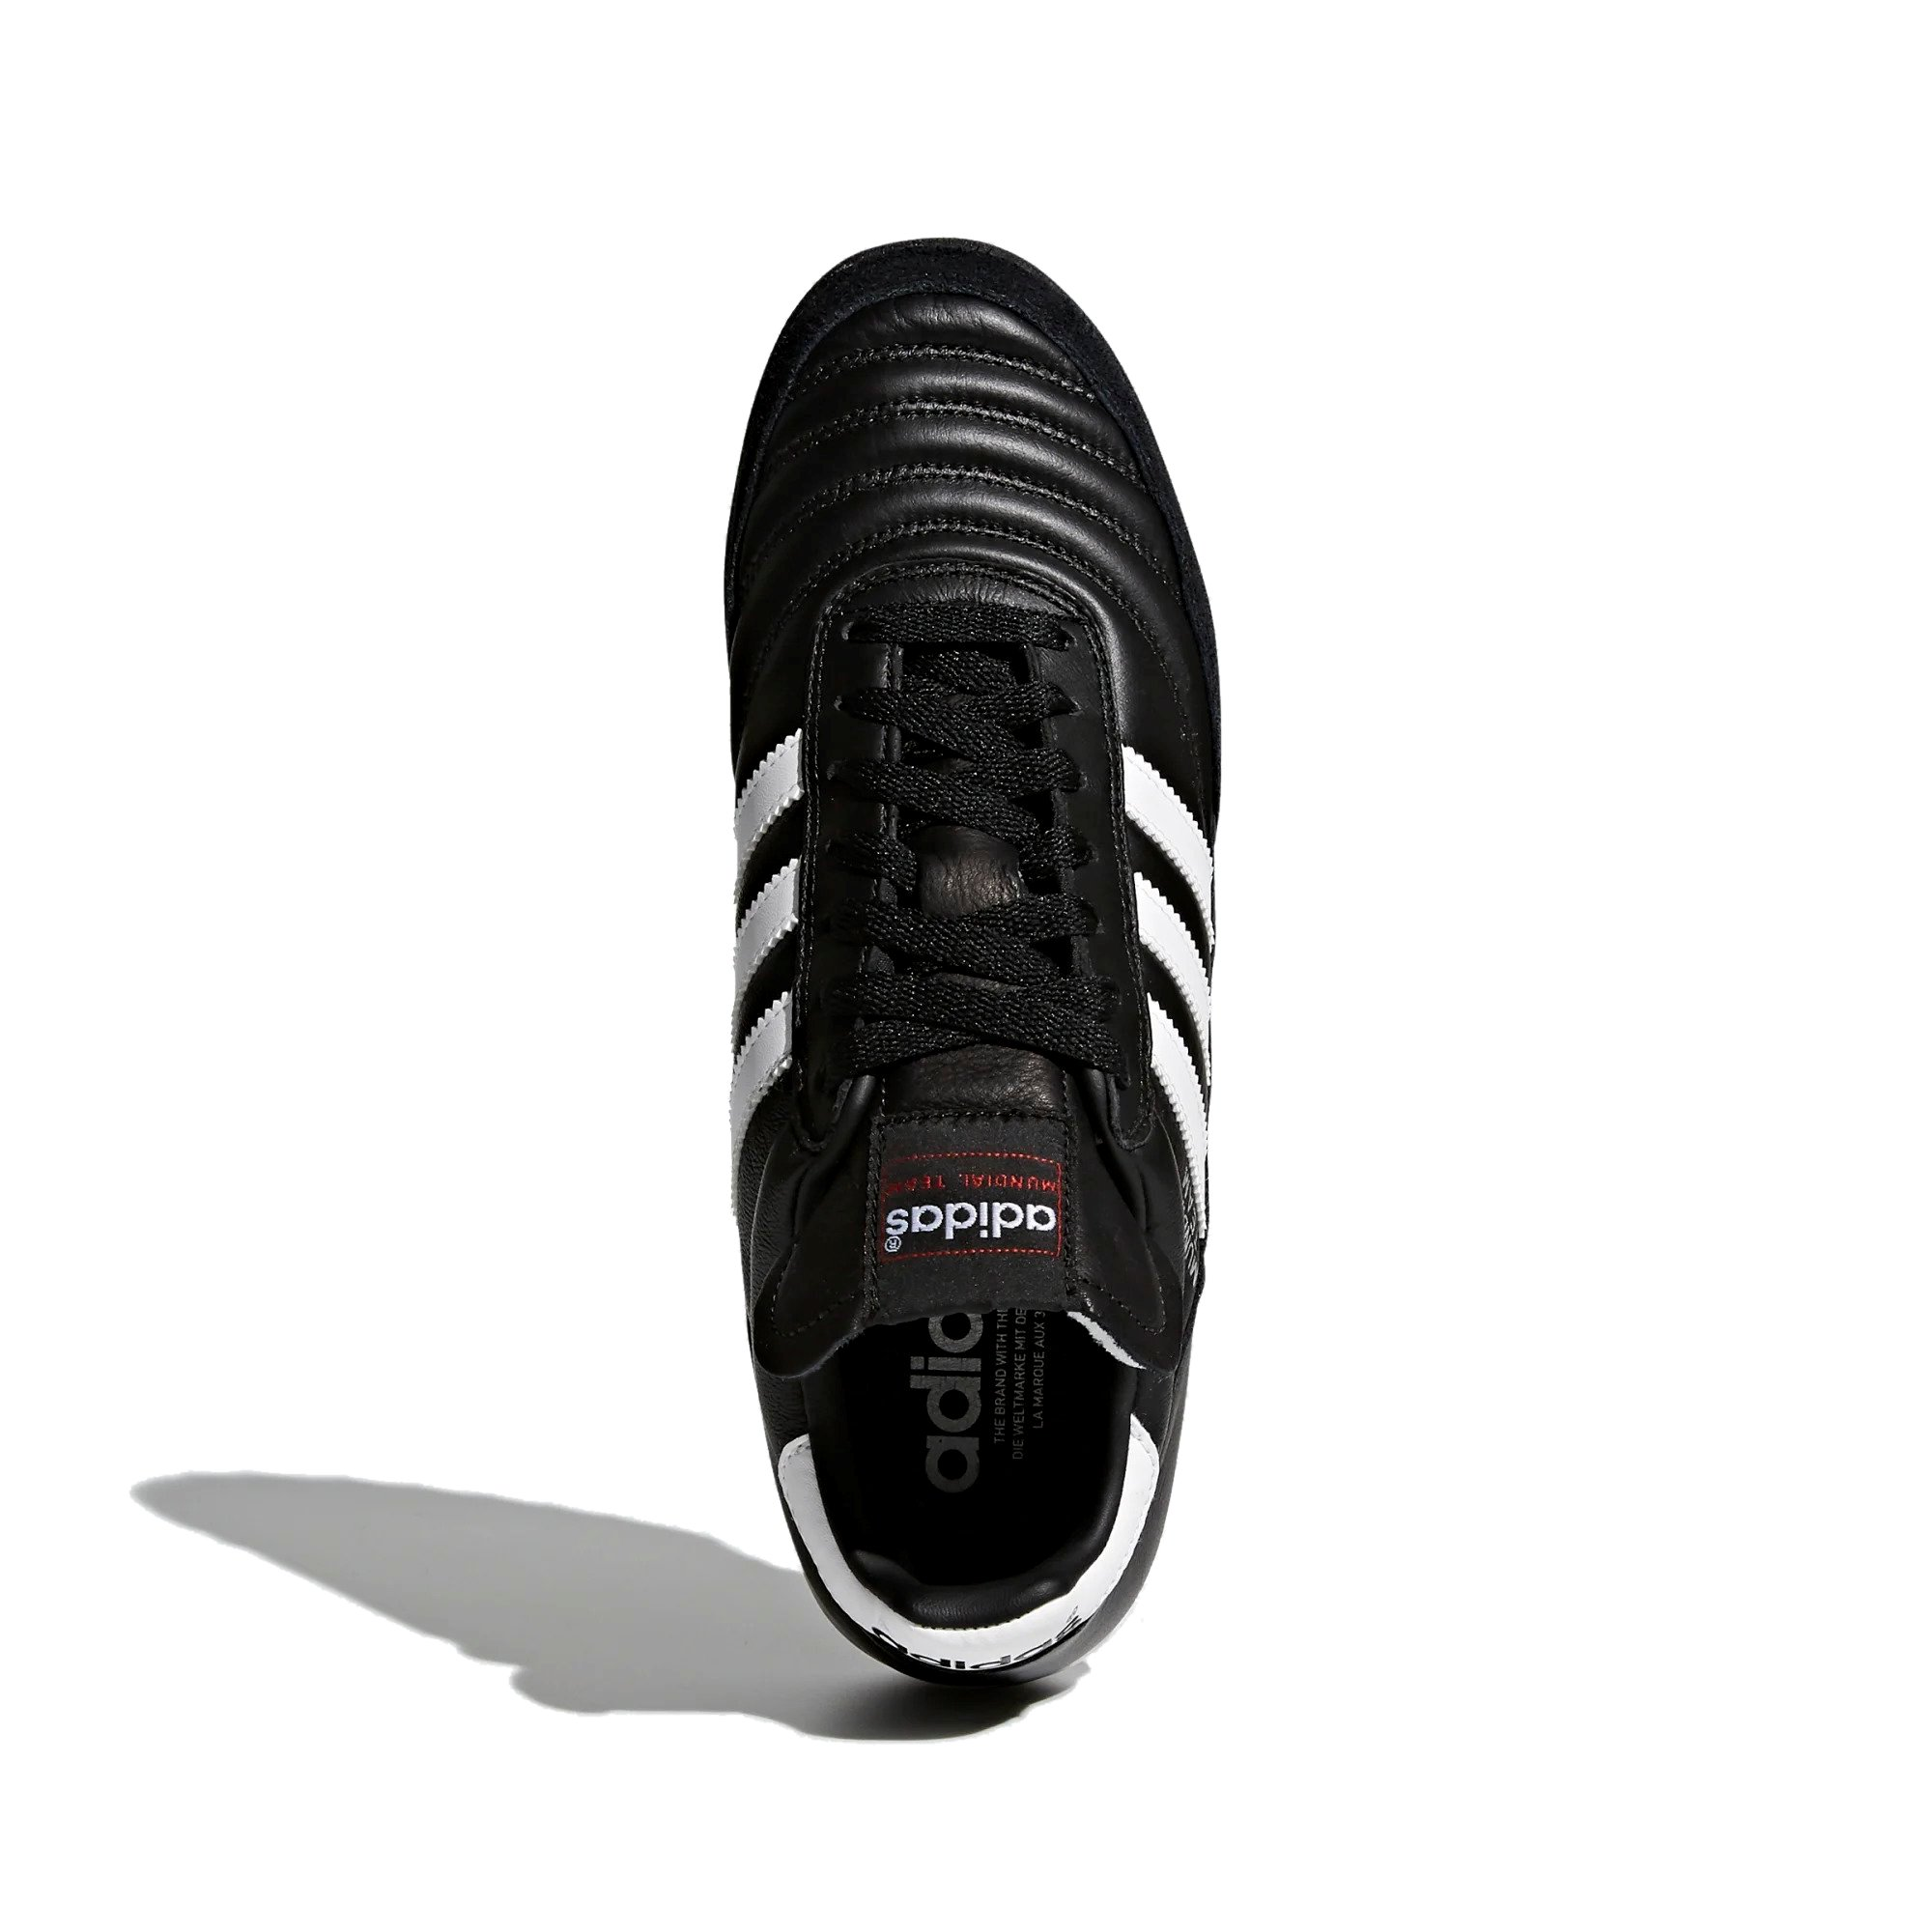 7ec4d1c9fe7 Adidas Mundial Team Unisex Soccer Cleats. click on thumbnail to zoom